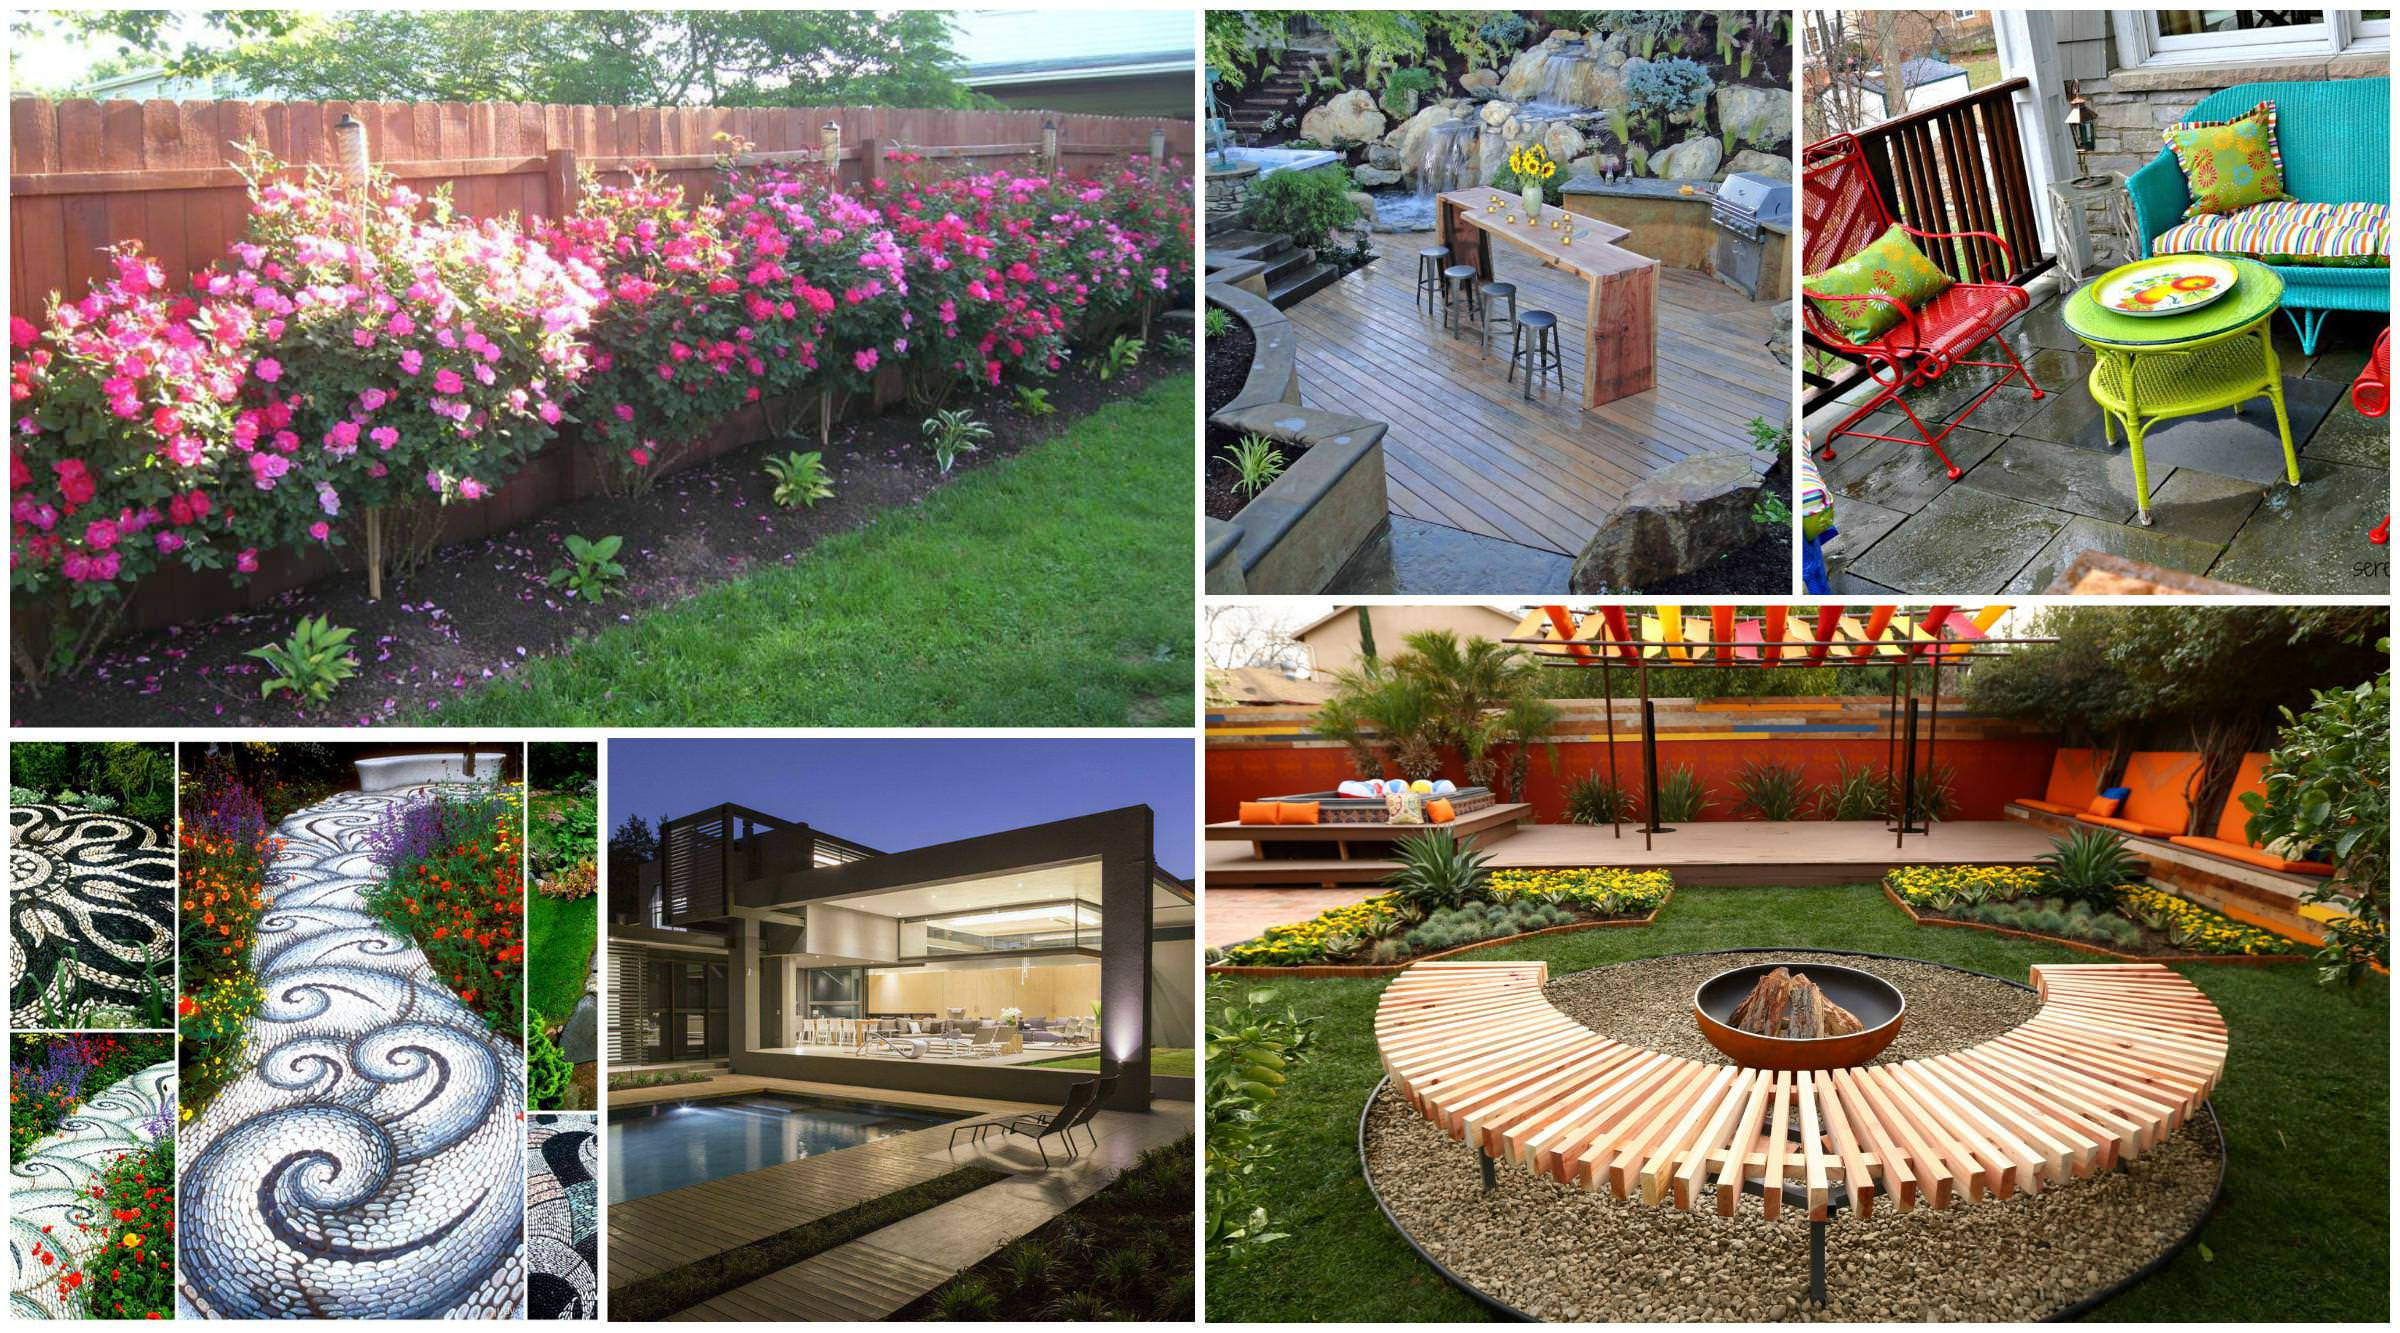 How To Diy Backyard Landscaping Ideas And Tips Lugenda with 14 Awesome Tricks of How to Makeover Diy Backyard Landscaping Ideas